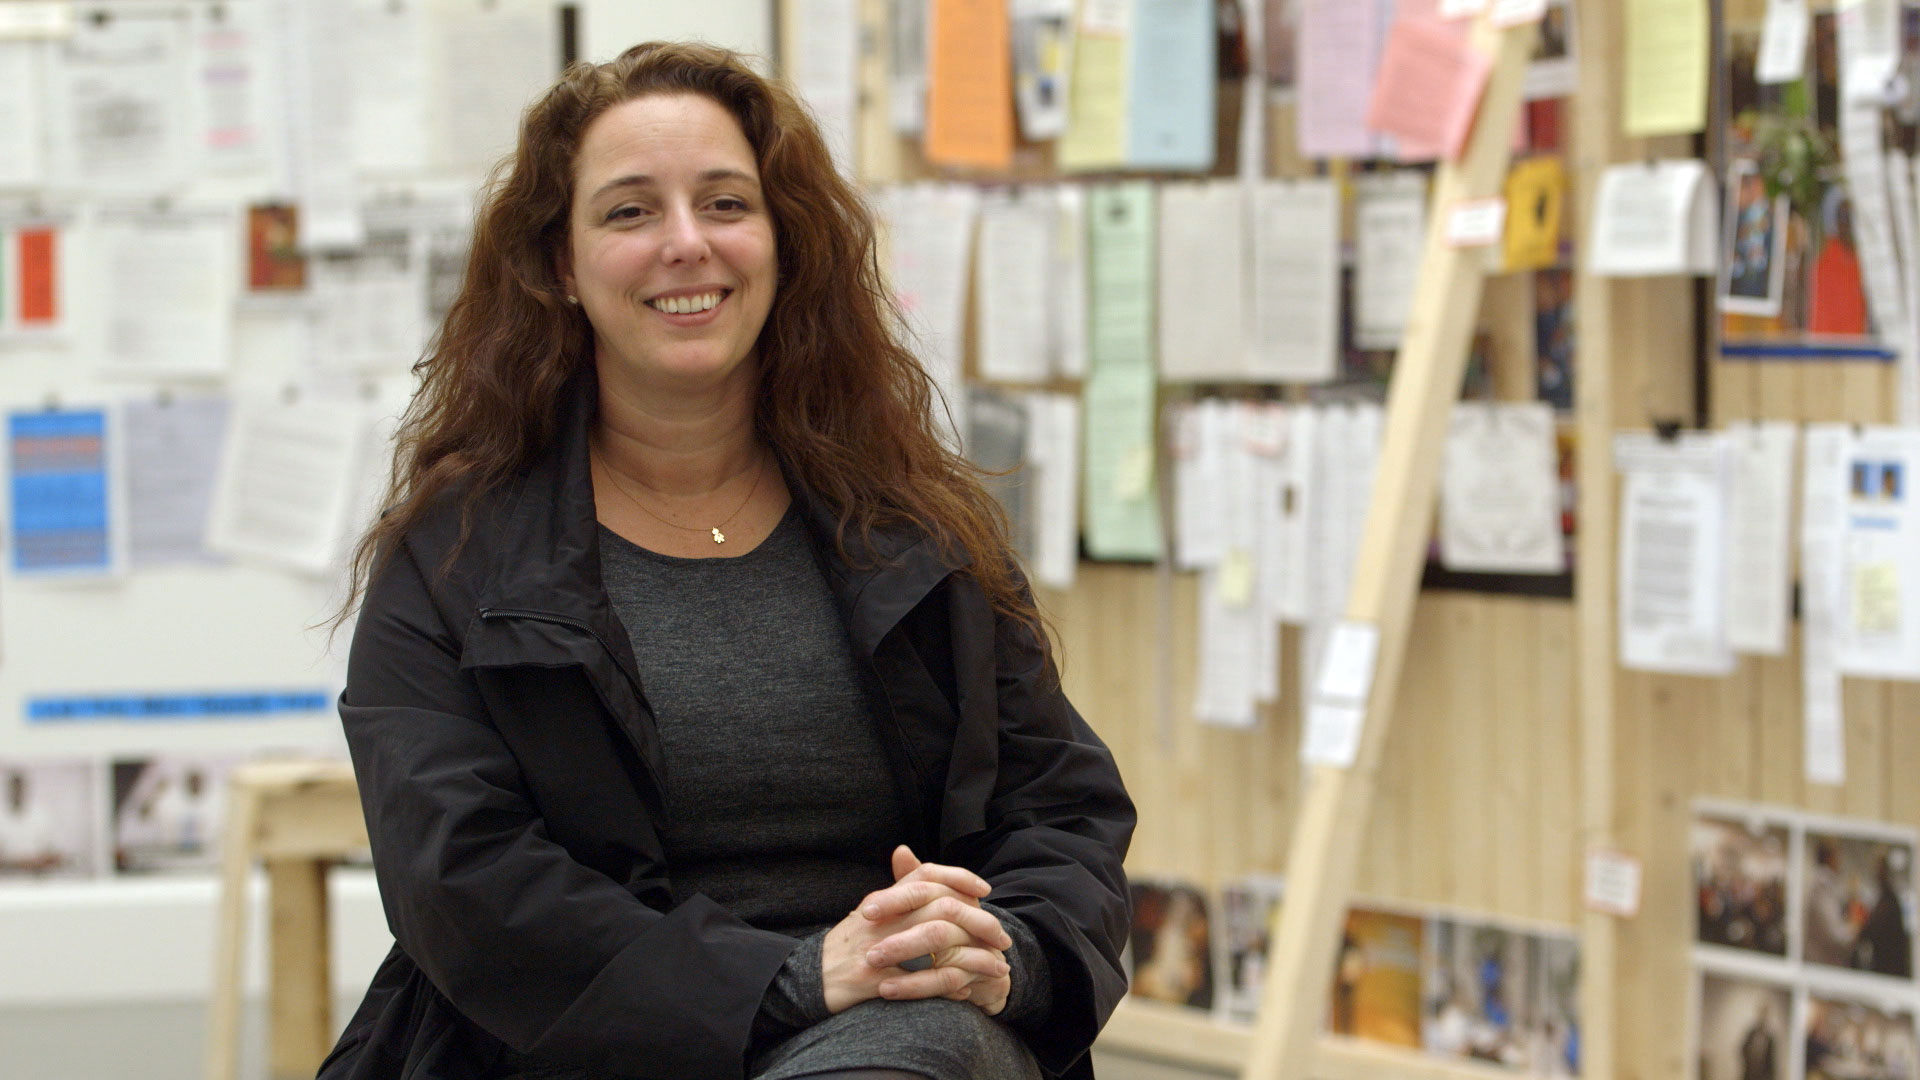 Why everyone's talking about the artist Tania Bruguera